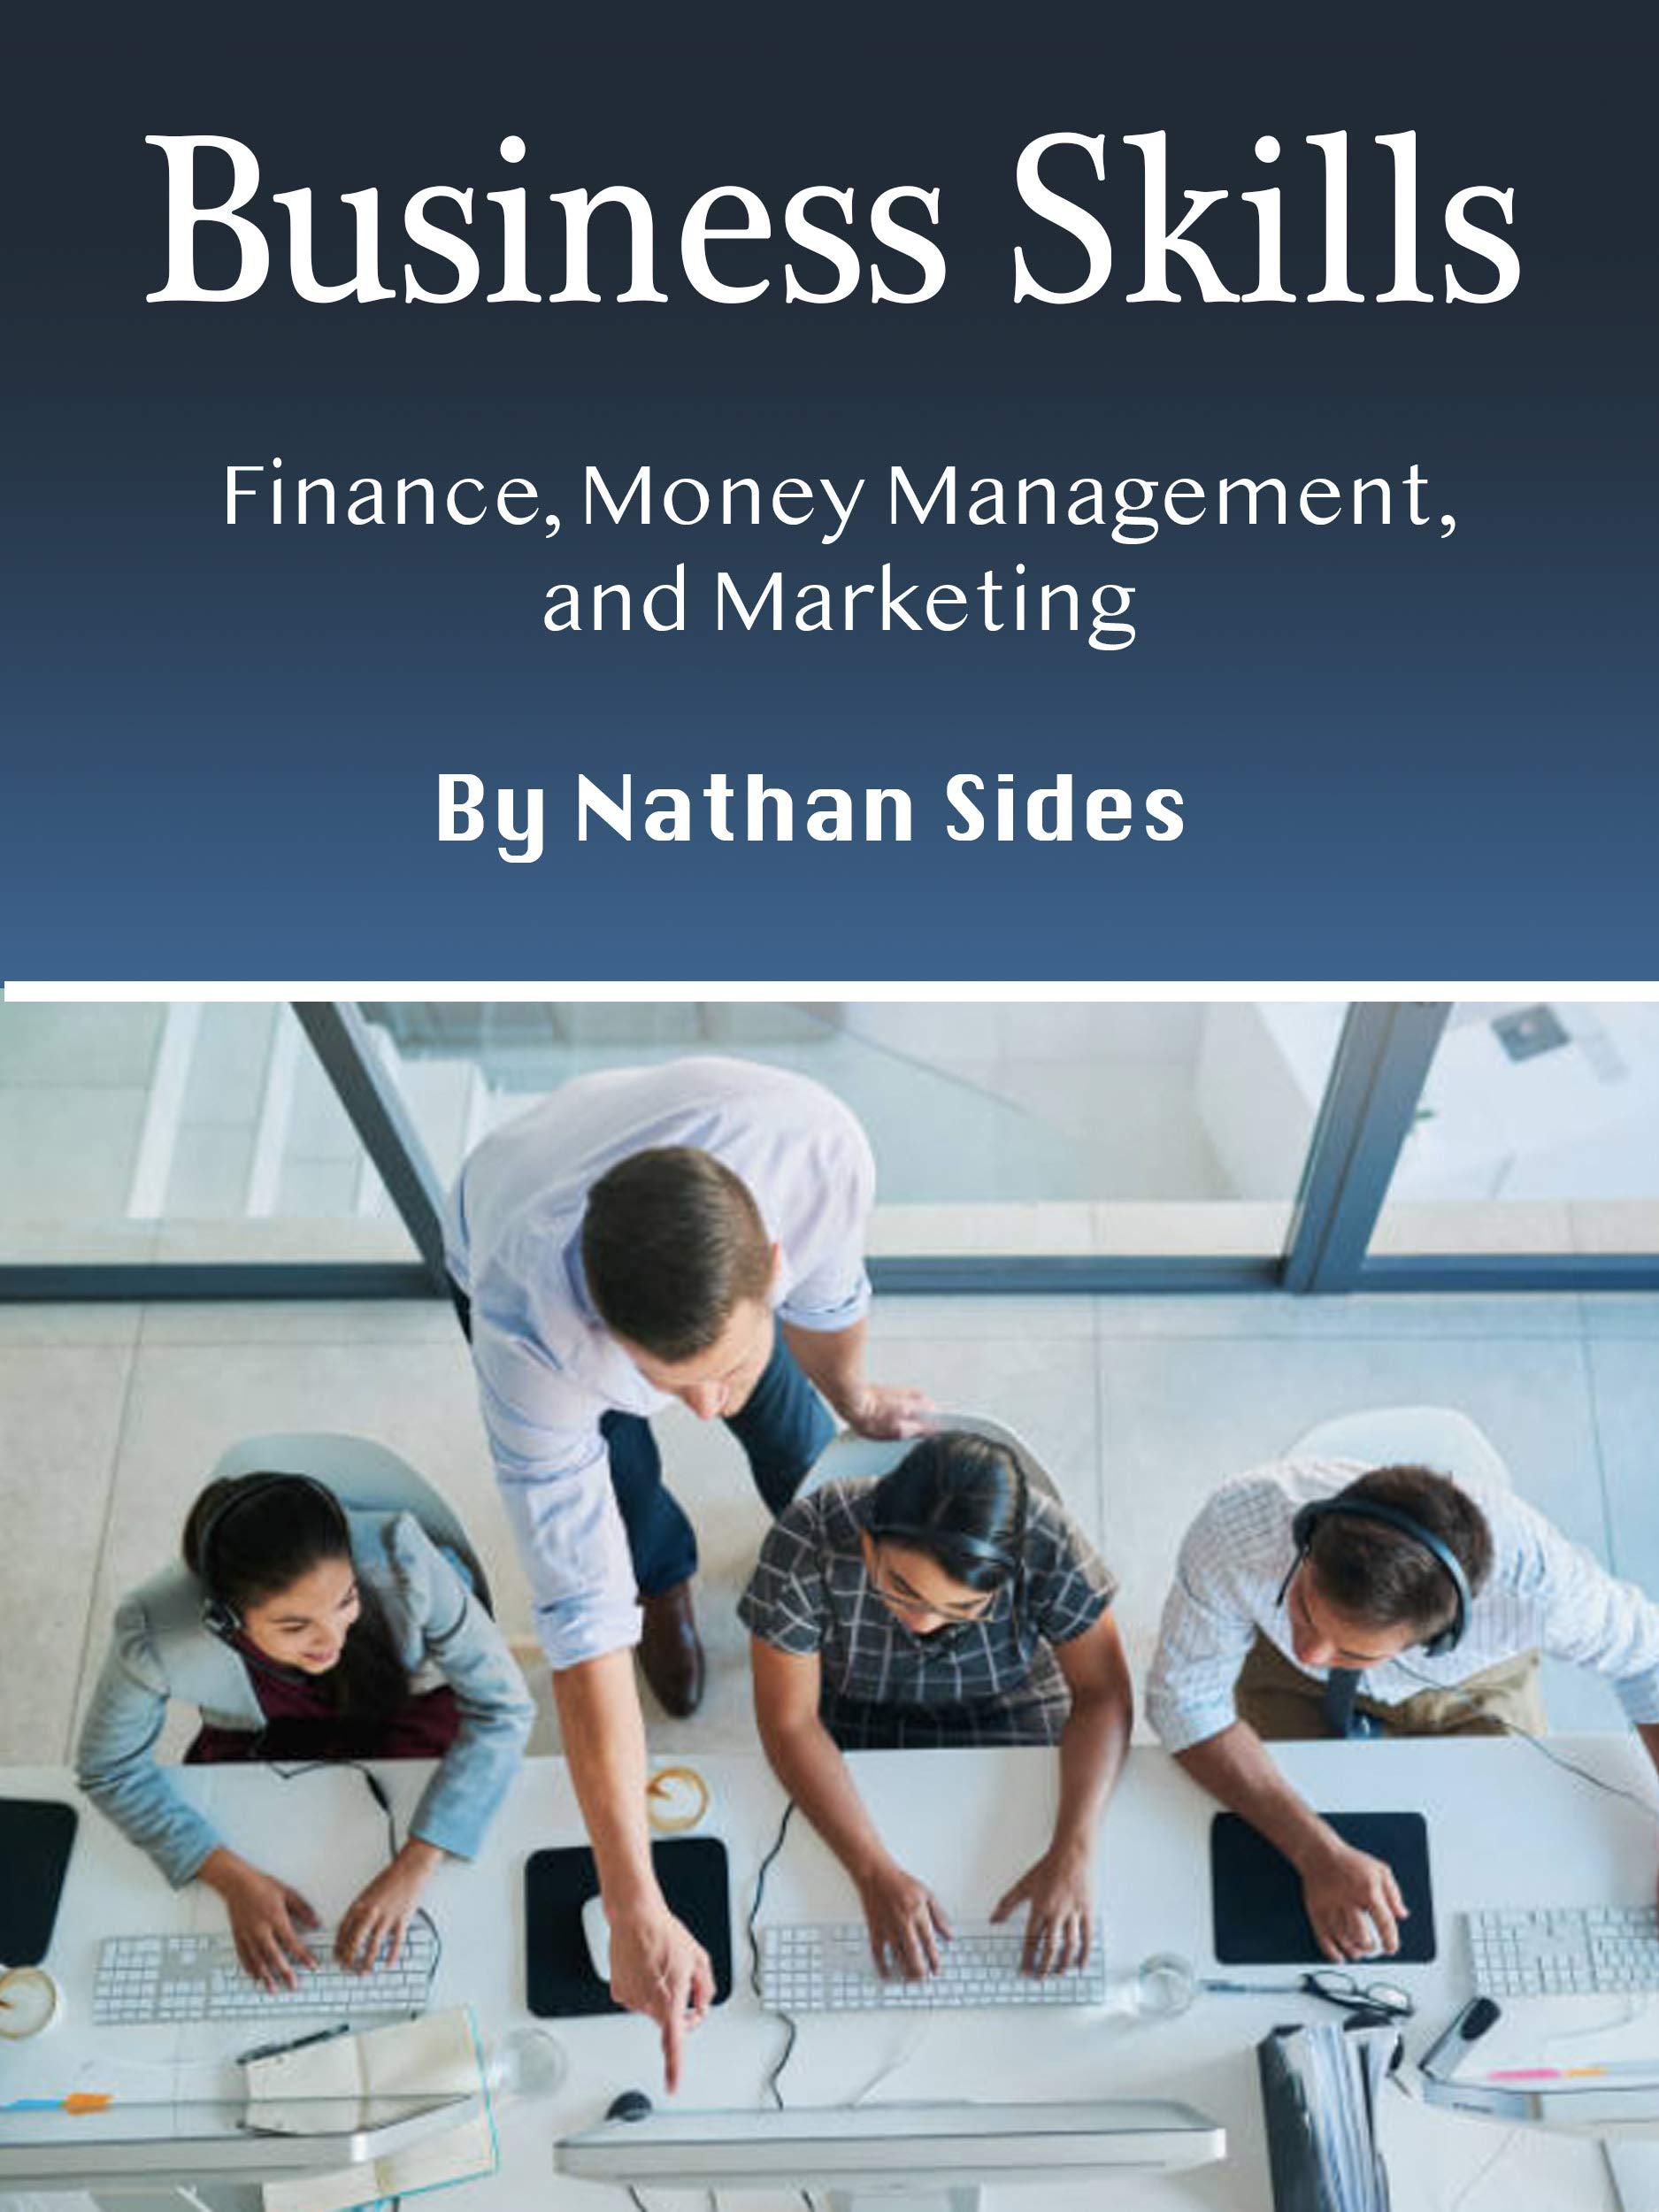 Business Skills: Finance, Money Management, and Marketing